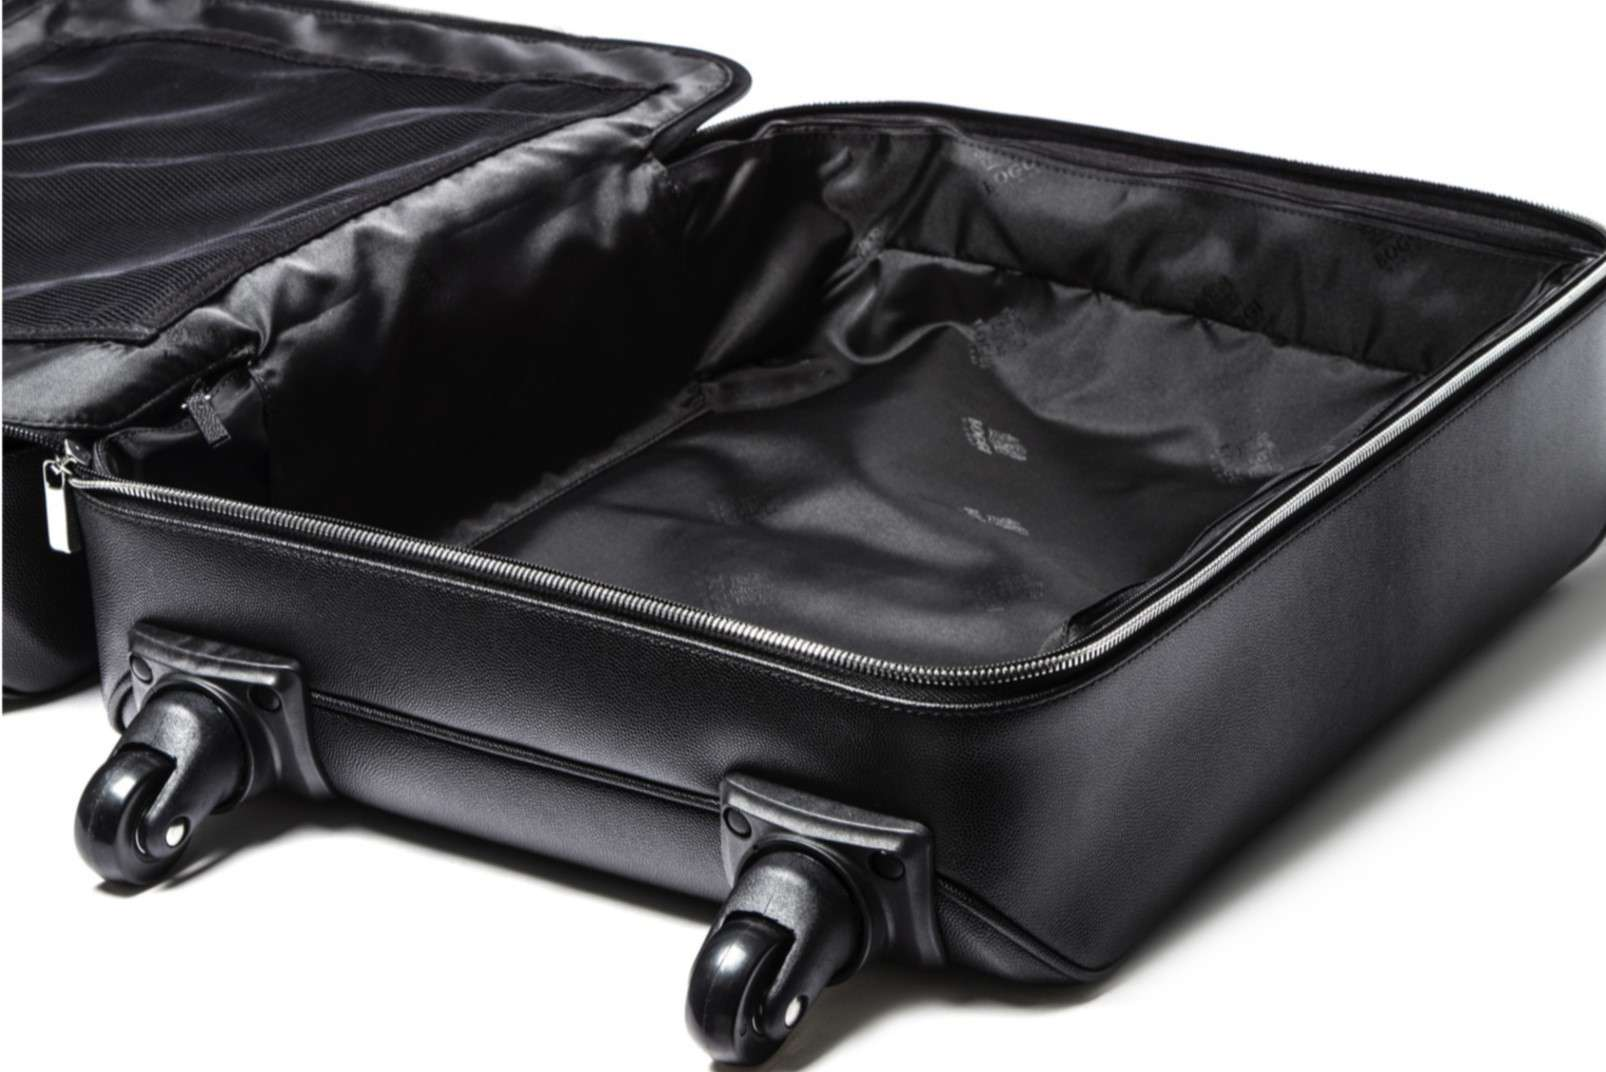 The spacious interiors of the trolley bag by Boggi Milano